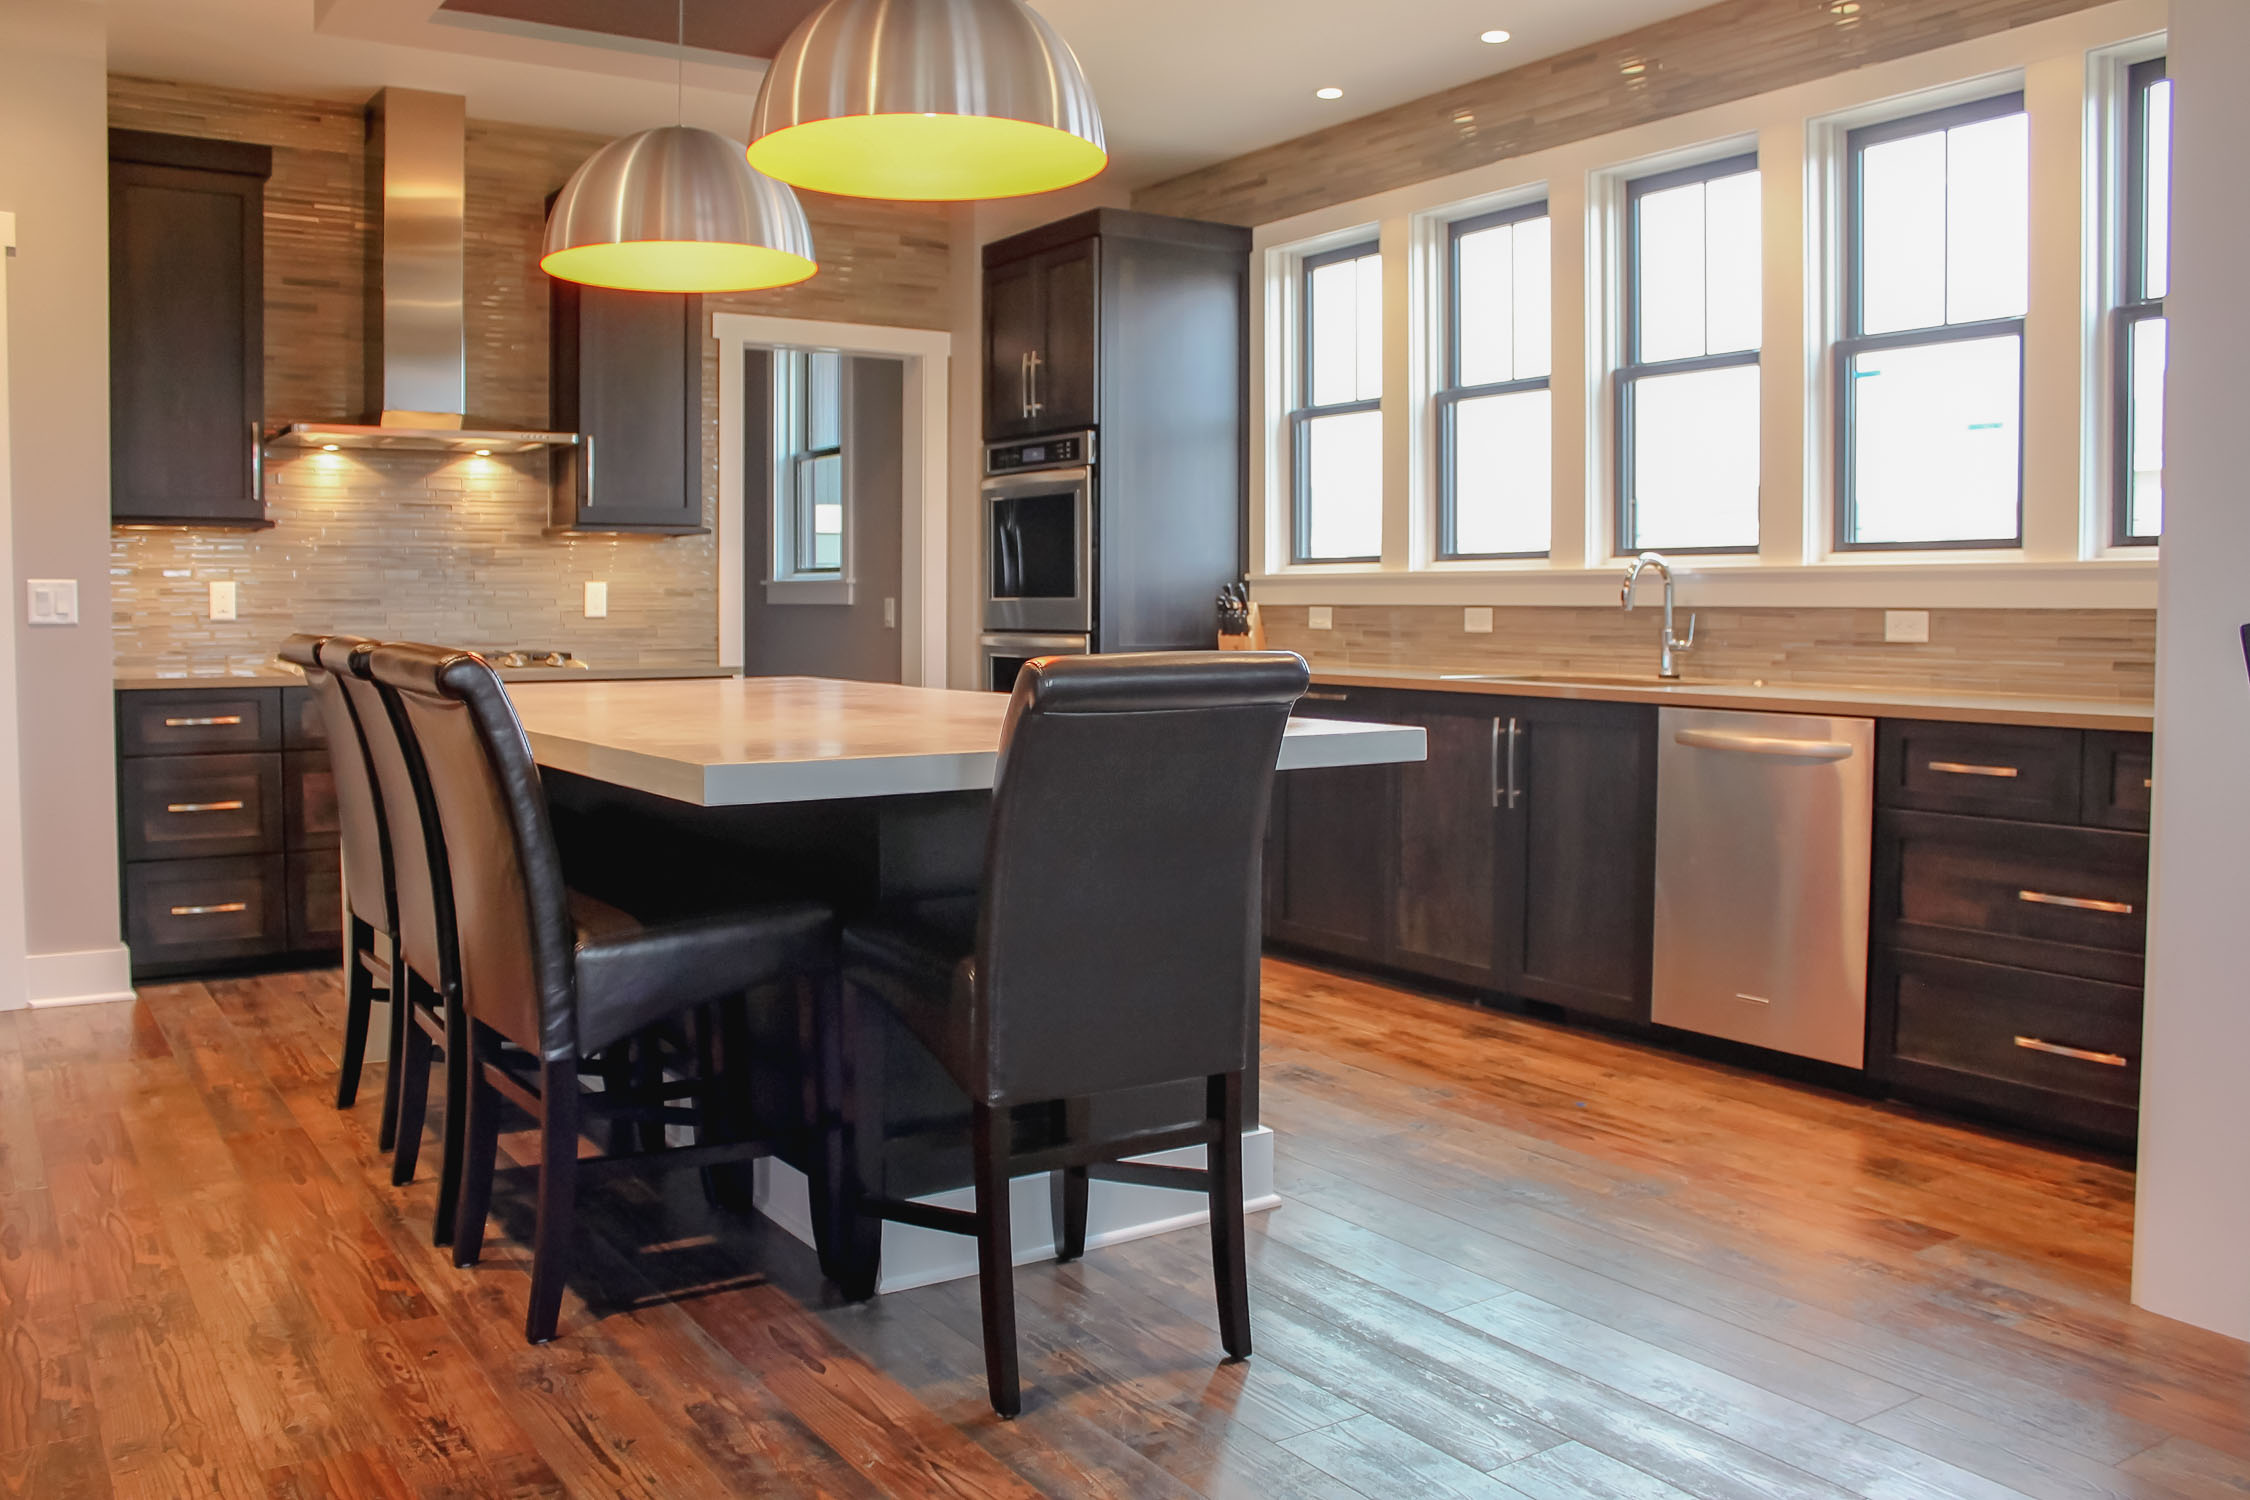 A modern kitchen design with brushed stainless steel pendants